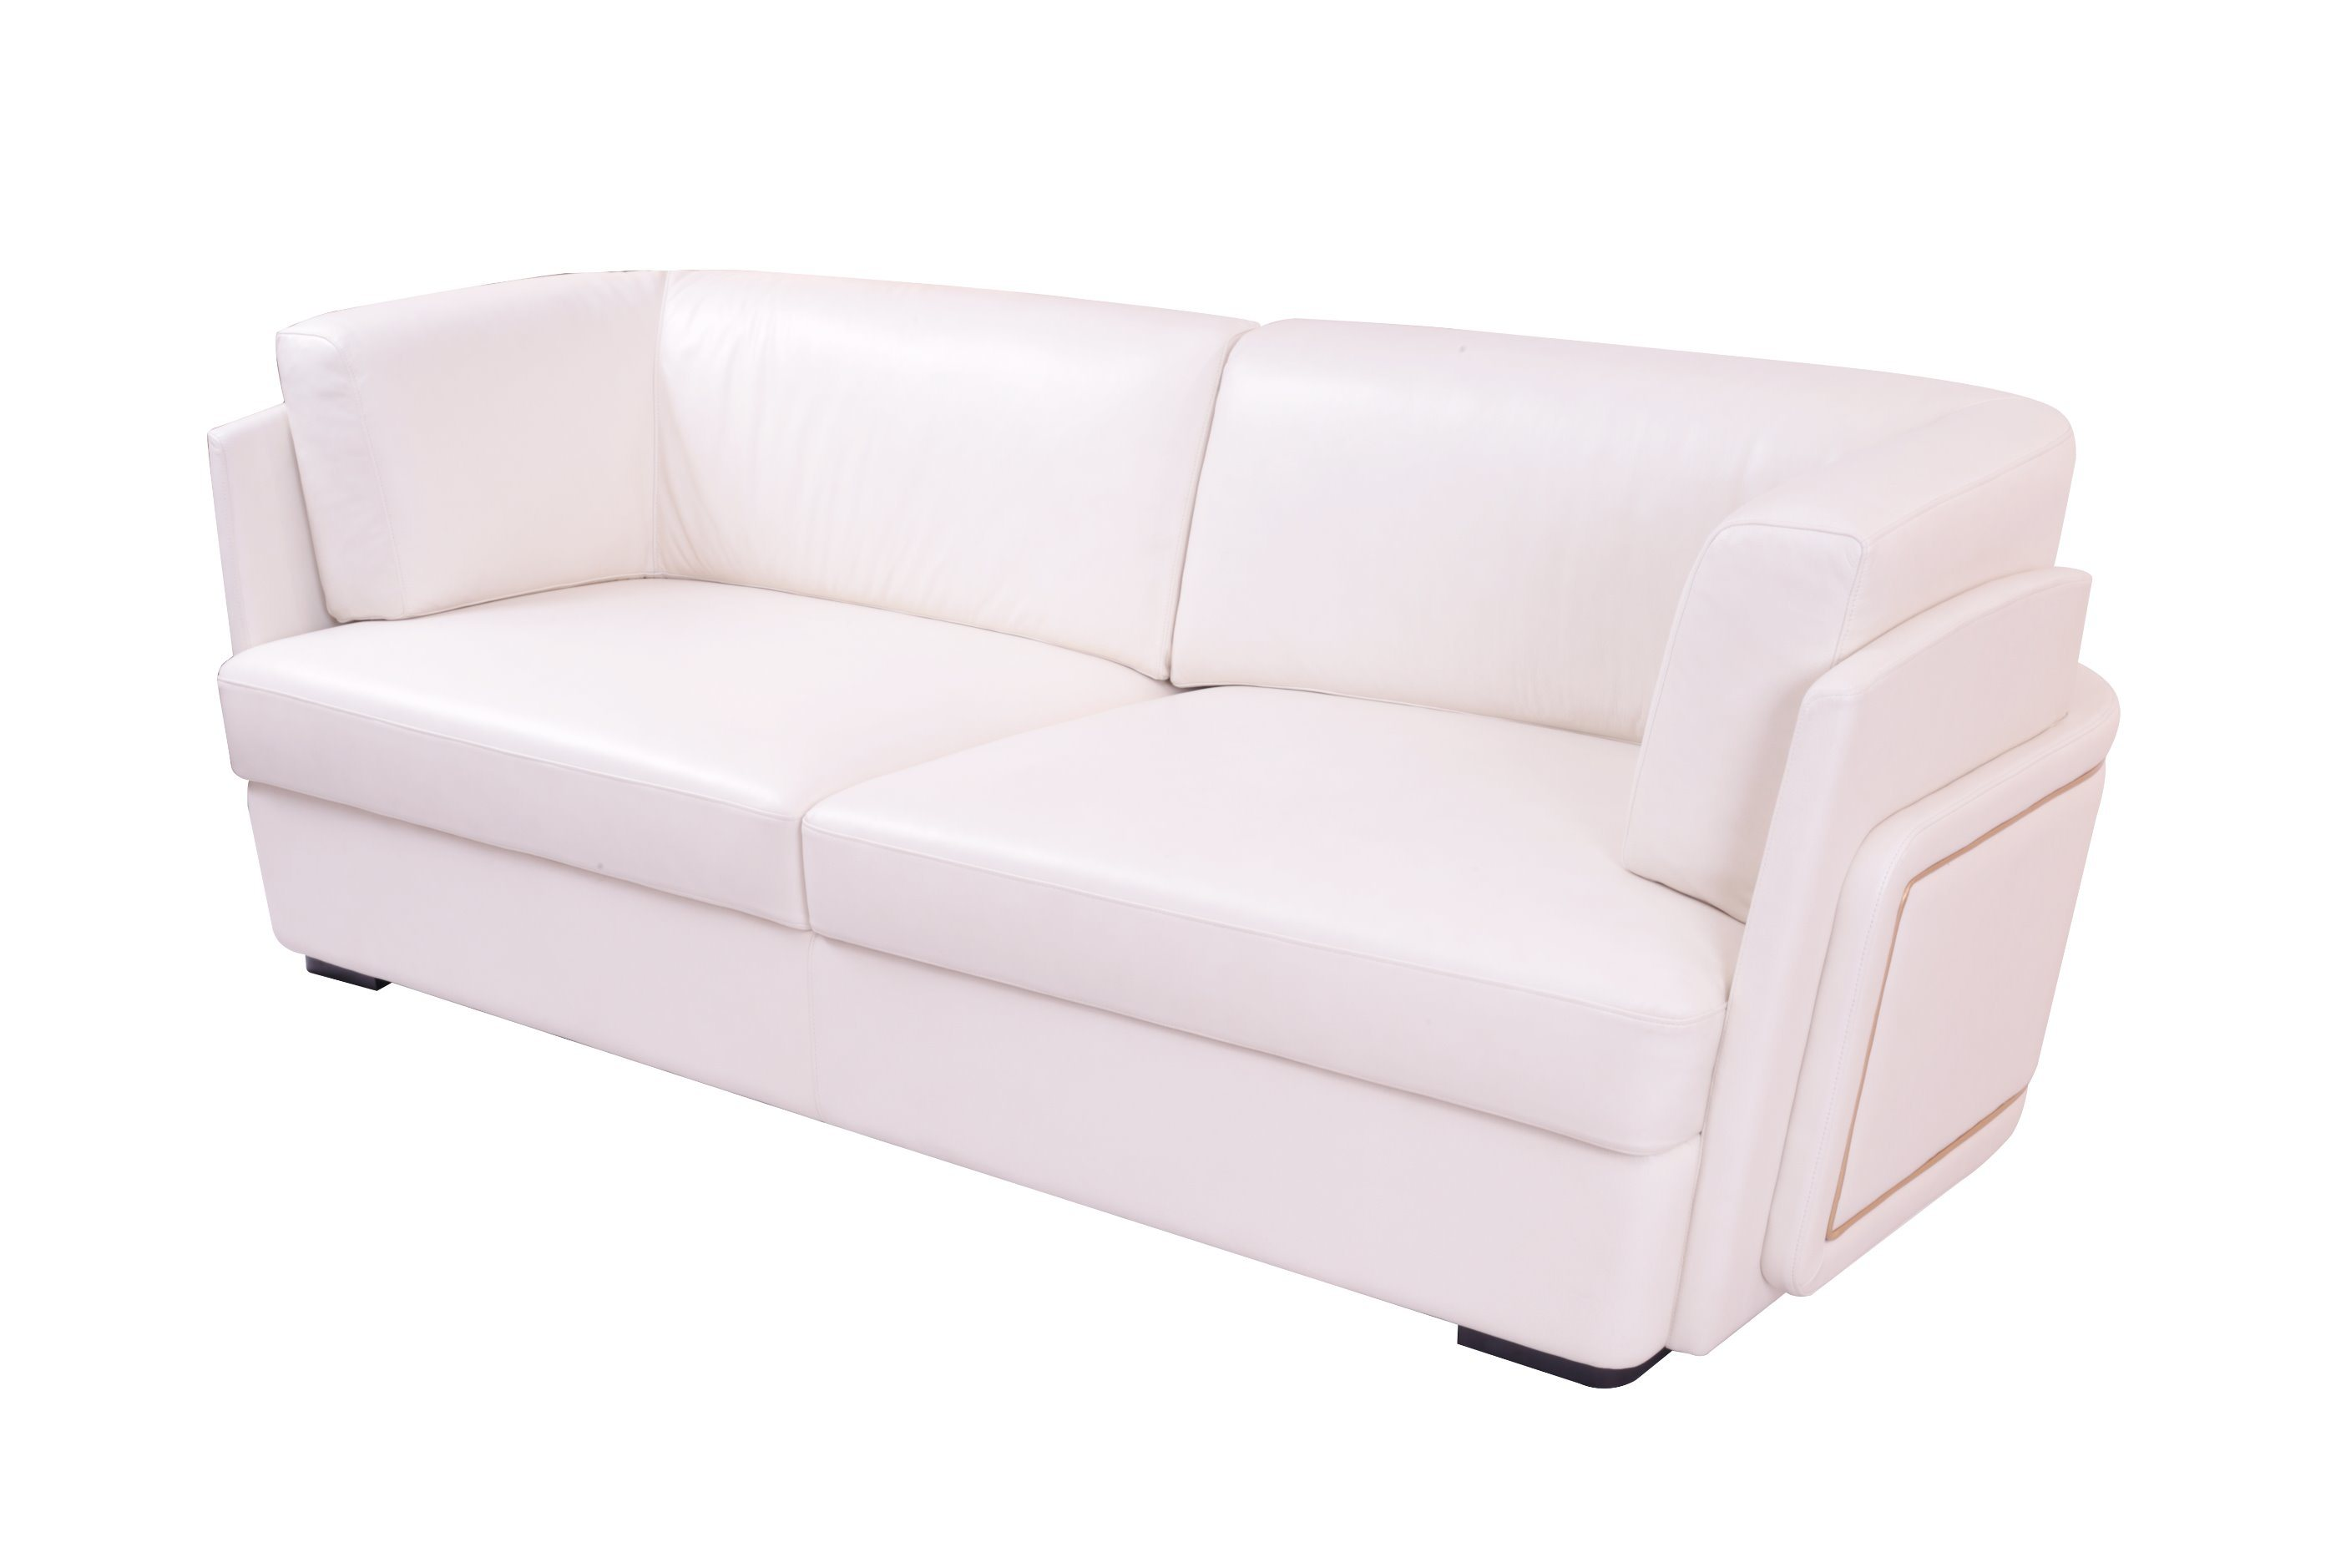 New Arrive Italian Design Leather Fabric Upholstered Living Room Furniture